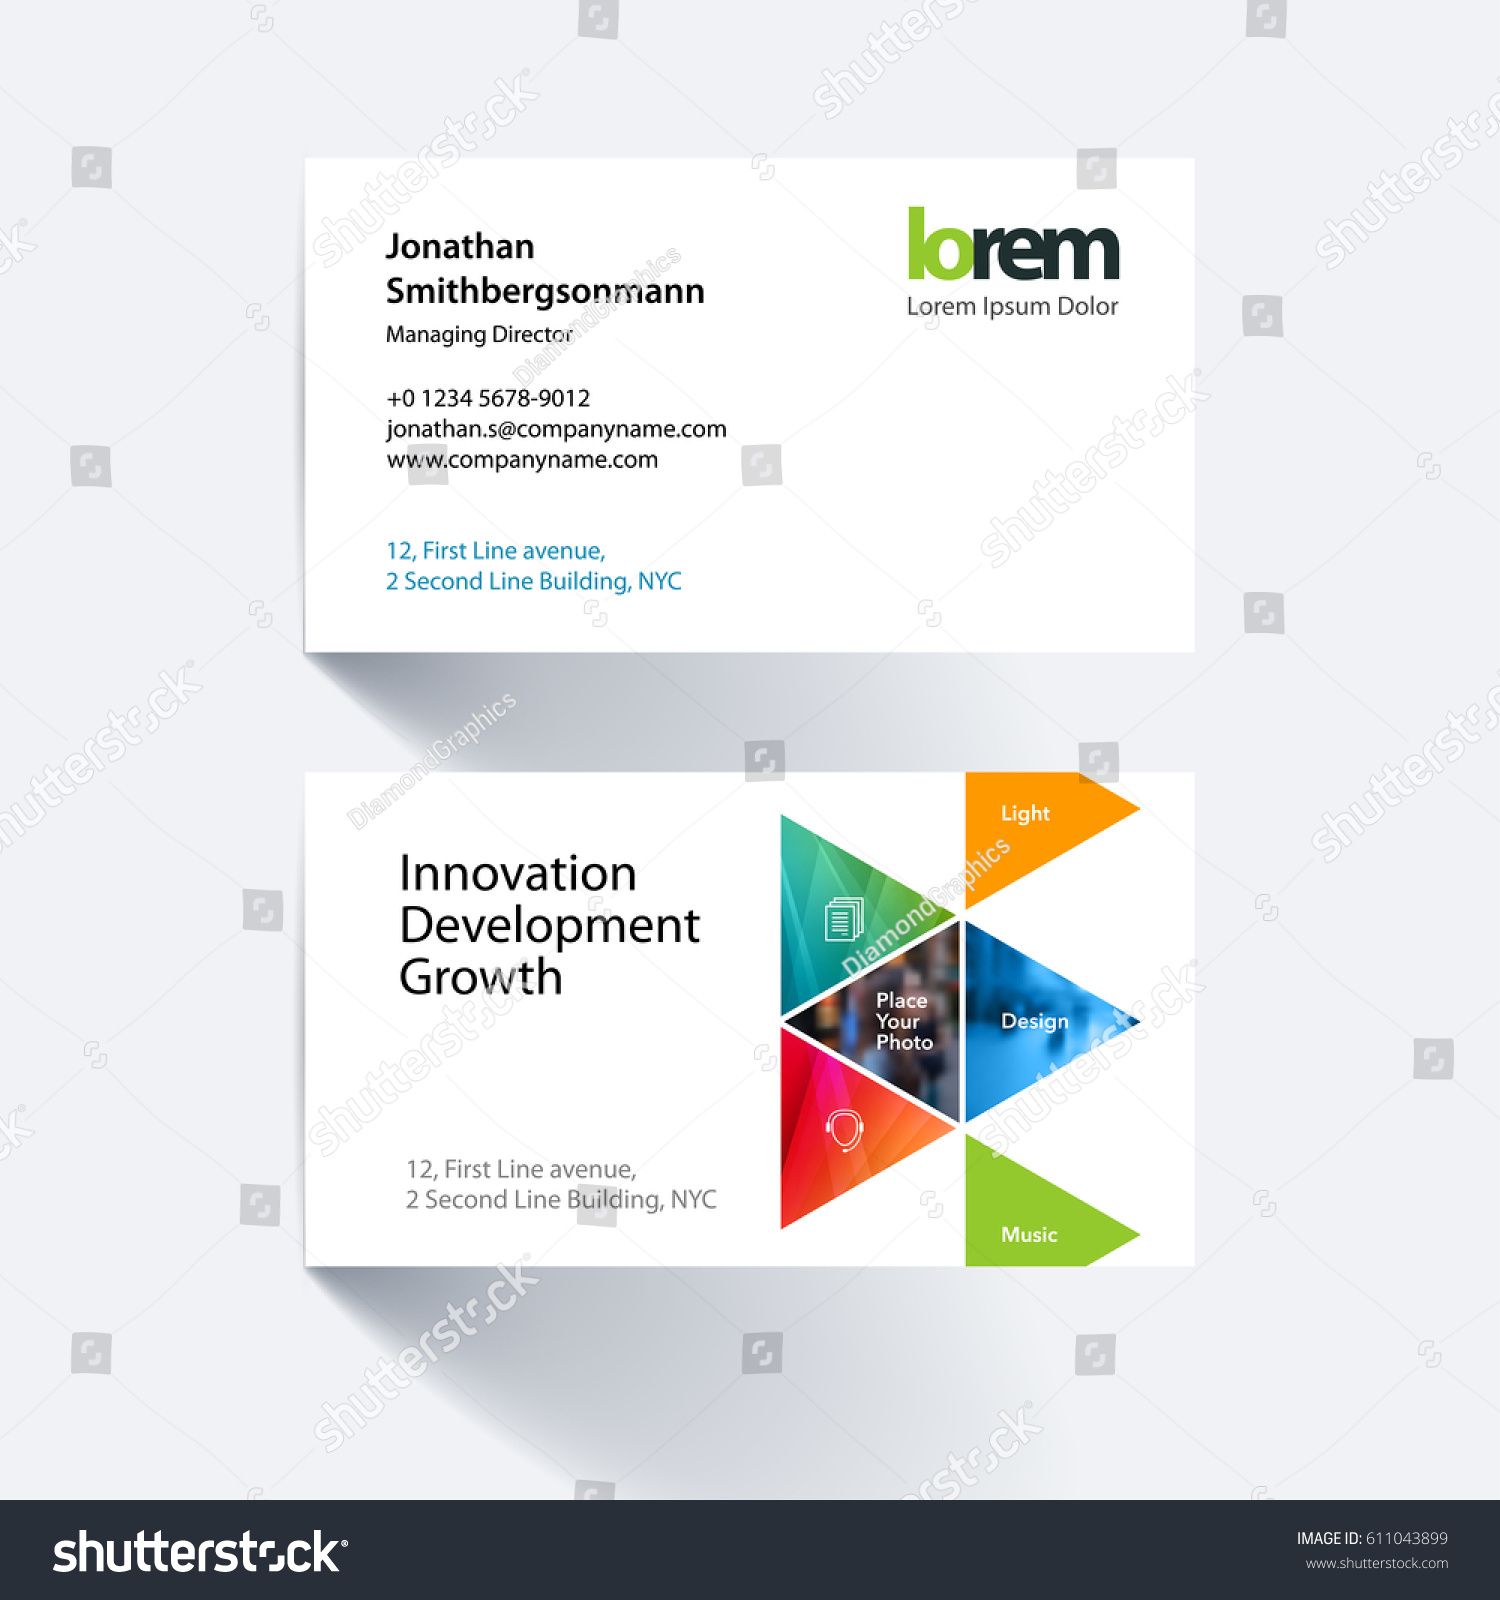 Vector Business Card Template Colourful Triangular Stock Vector ...